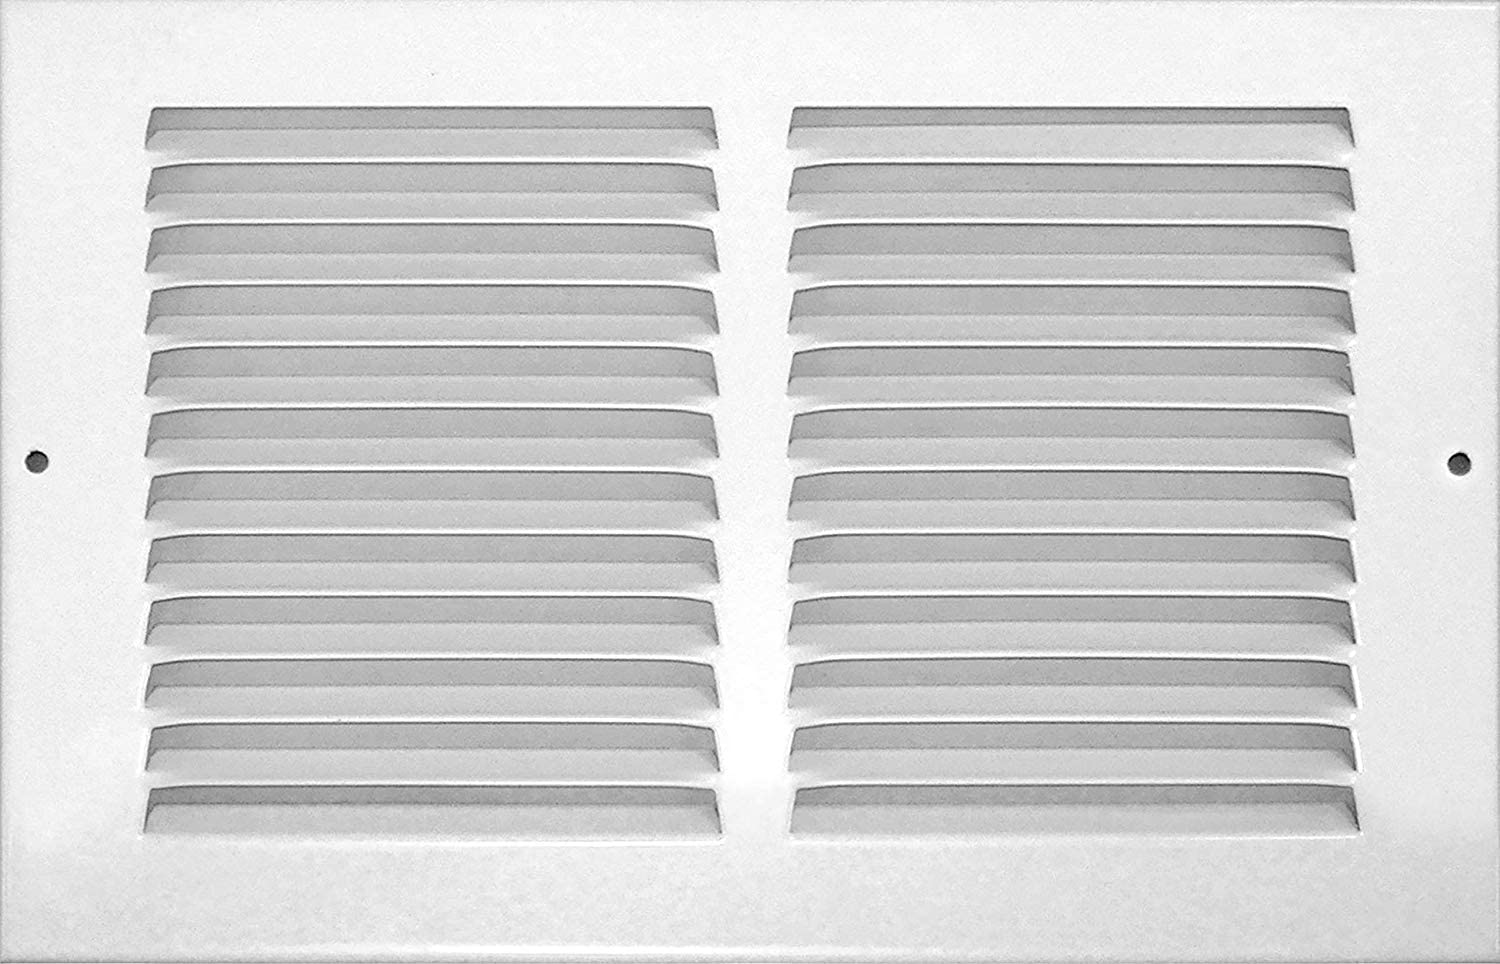 Accord ABRGWH126 Return Grille with 1/2-Inch Fin Louvered, 12-Inch x 6-Inch(Duct Opening Measurements), White